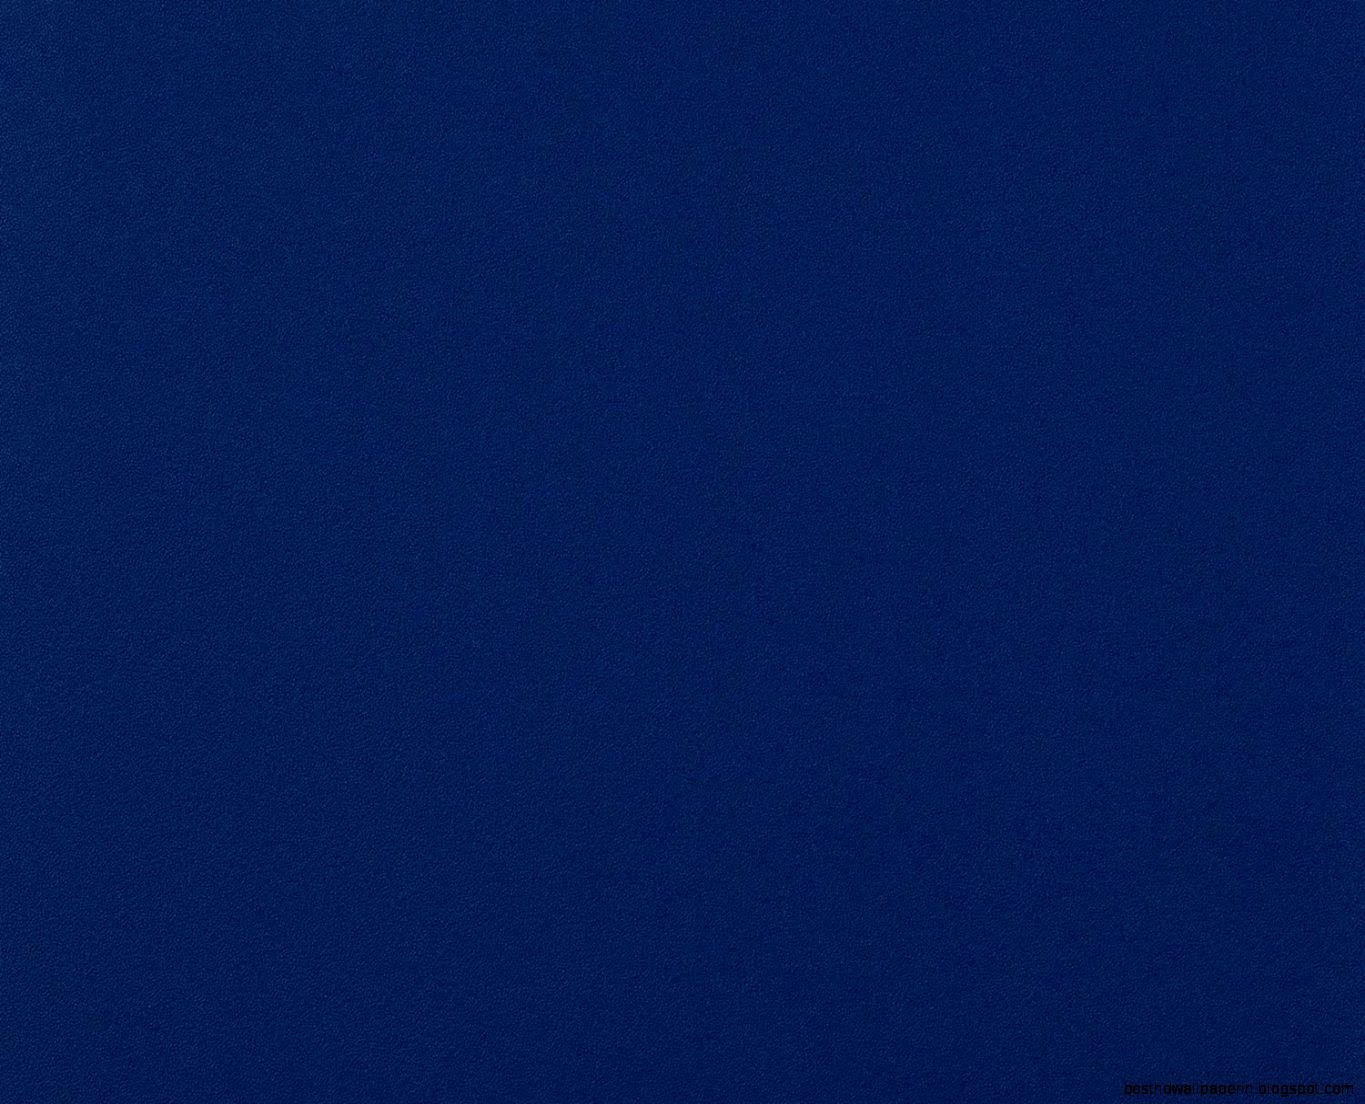 plain blue background hd best hd wallpapers